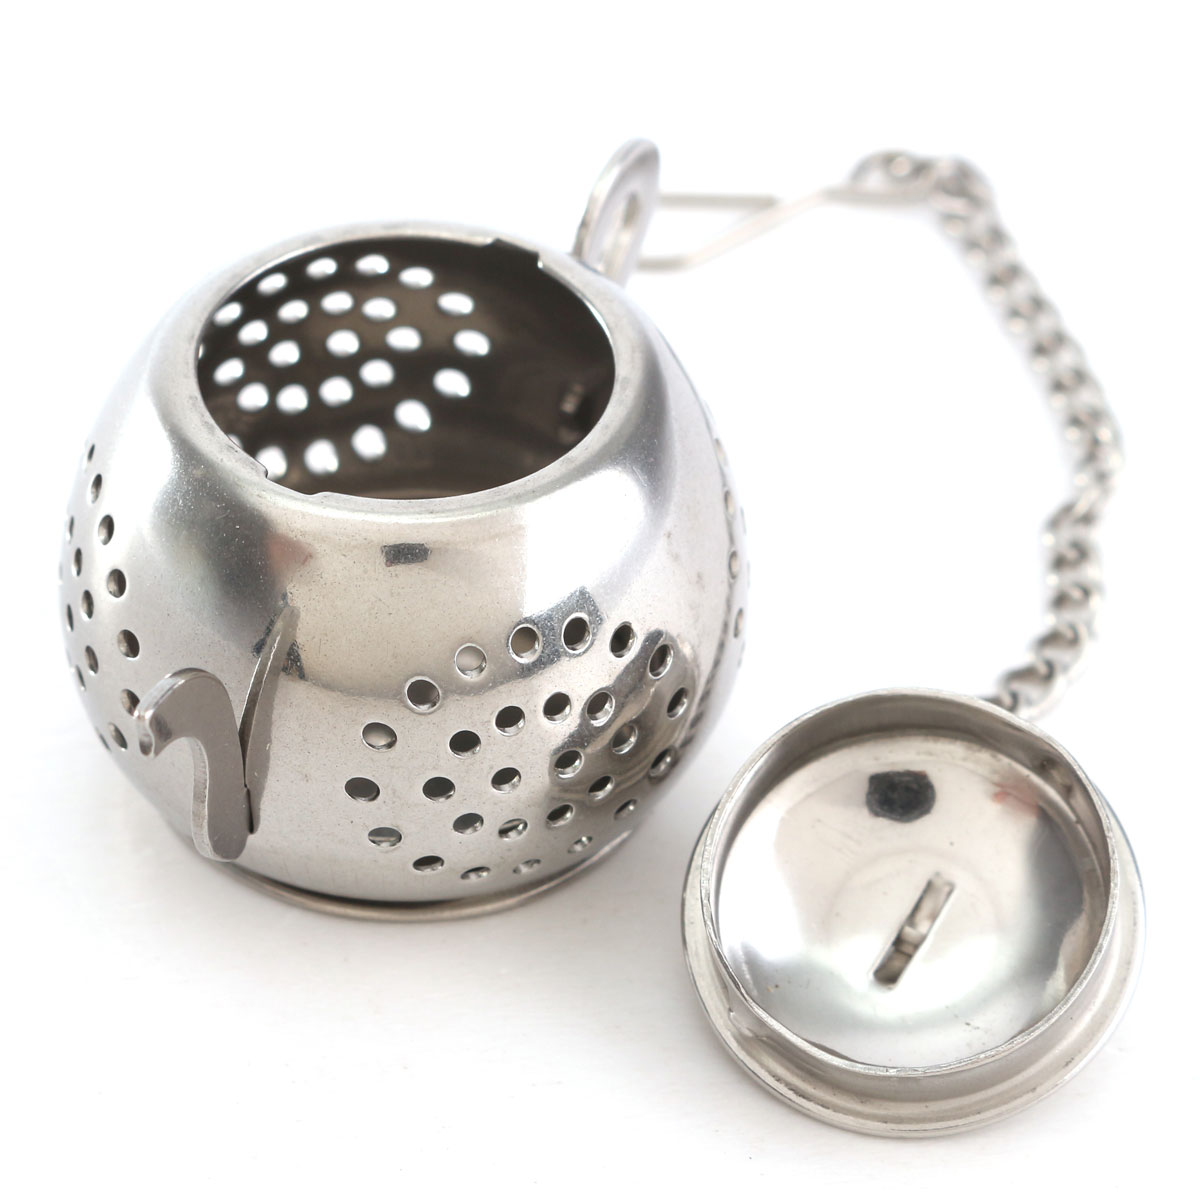 how to make loose leaf tea without infuser